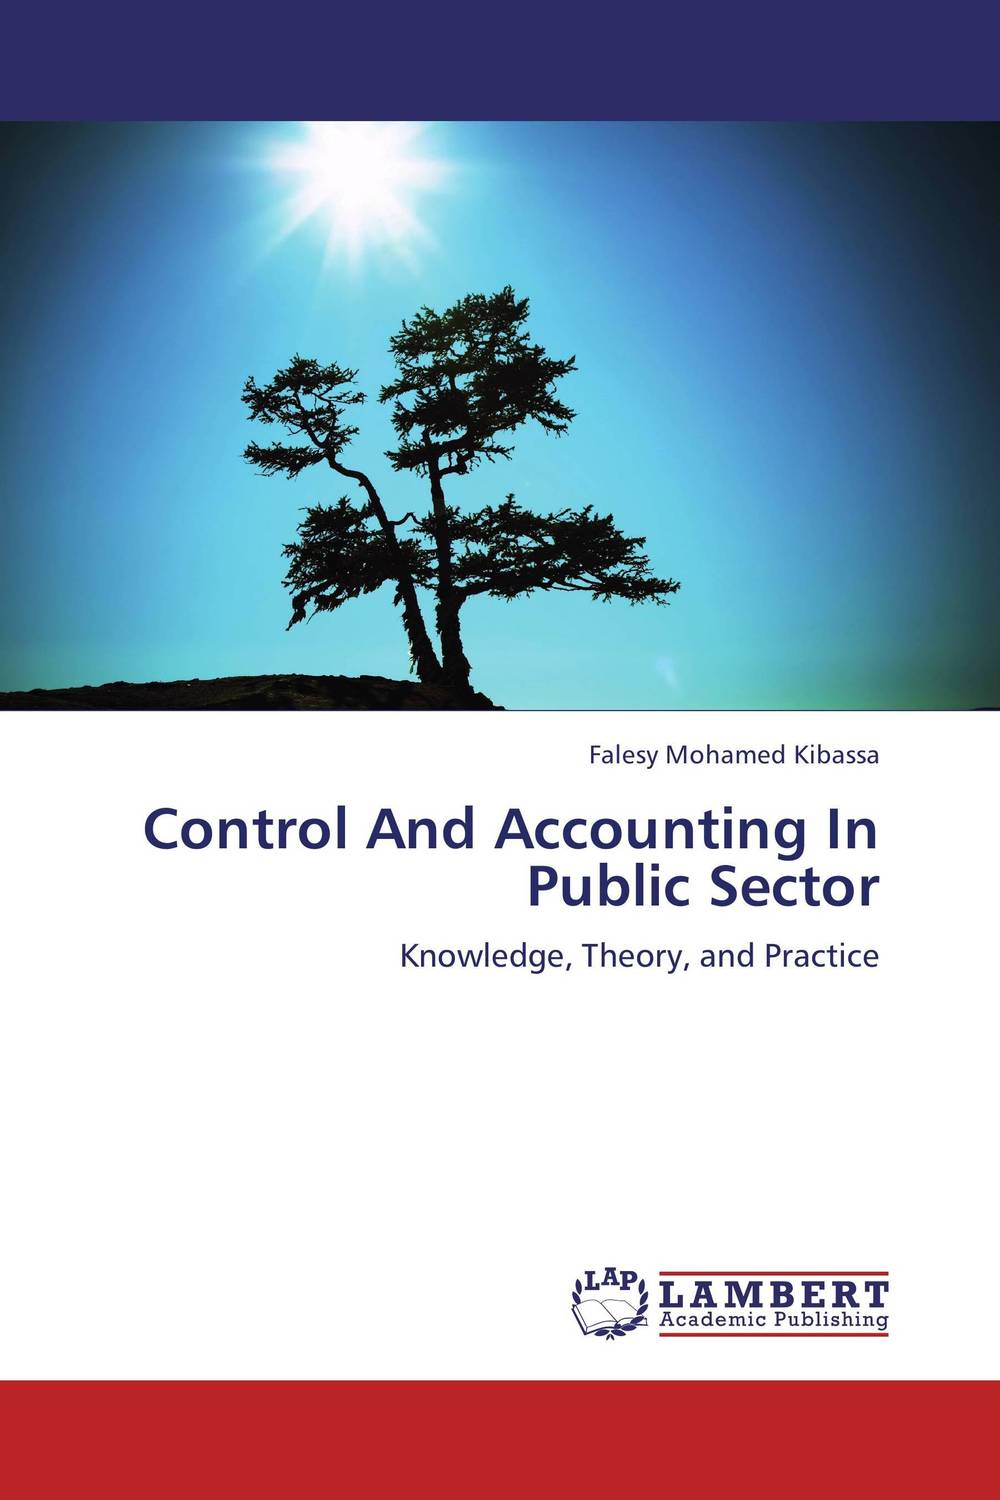 Control And Accounting In Public Sector